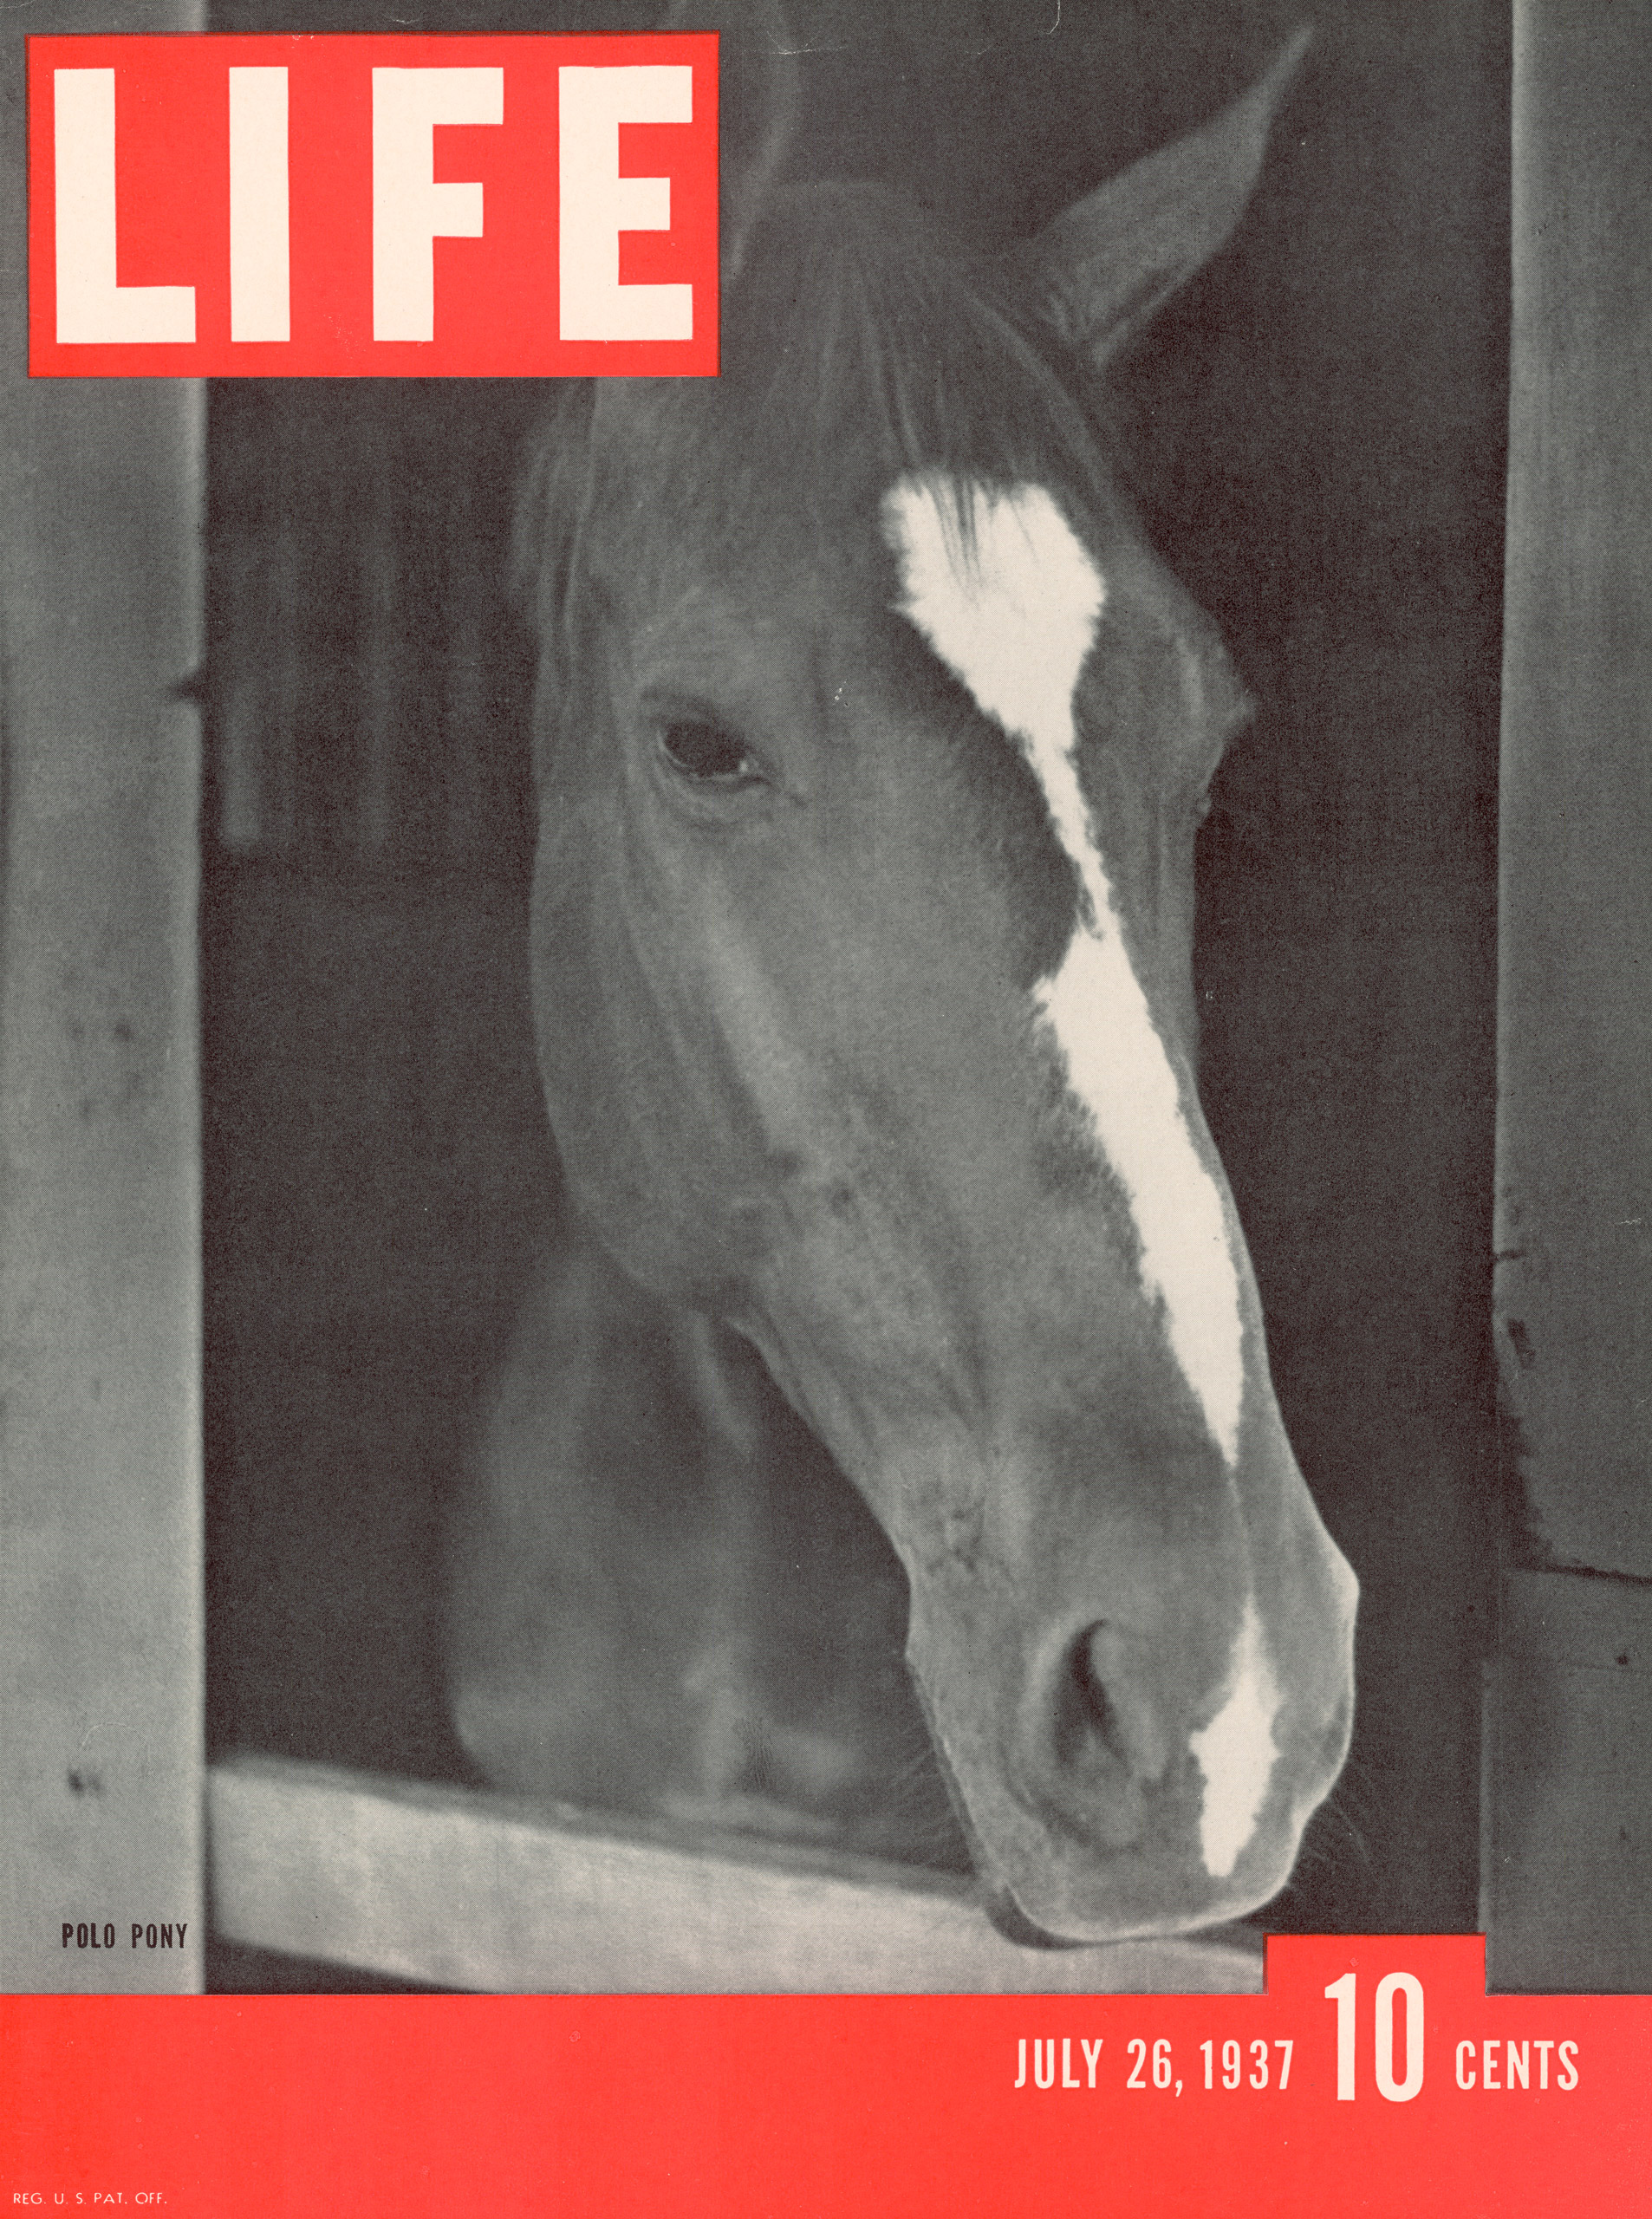 July 26, 1937 LIFE Magazine cover (photo by Alfred Eisenstaedt).